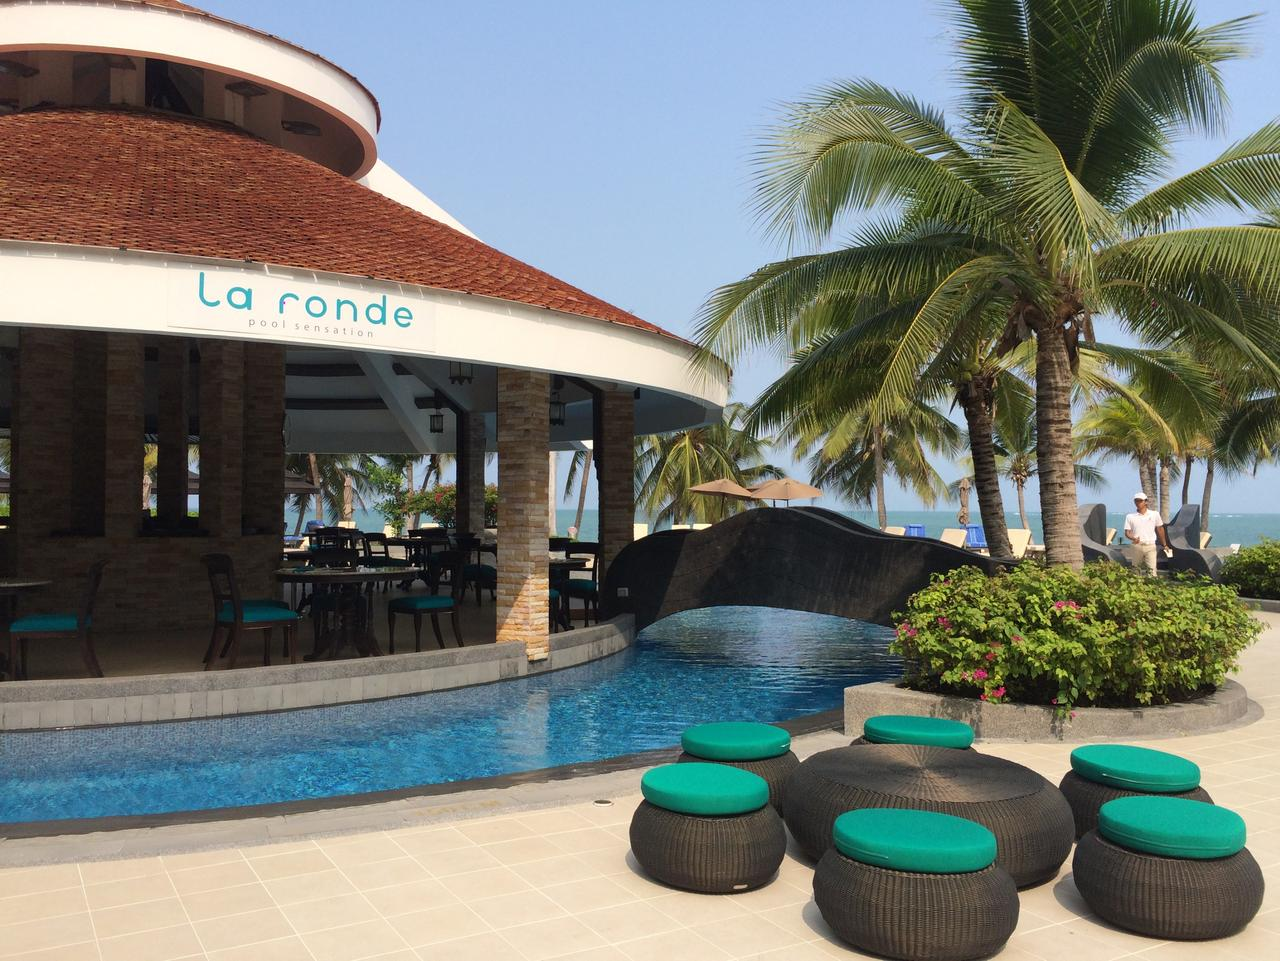 Supplied Travel MERC WELLNESS La Ronde Restaurant in the middle of the pool at Royal Wing Suites & Spa in Pattaya